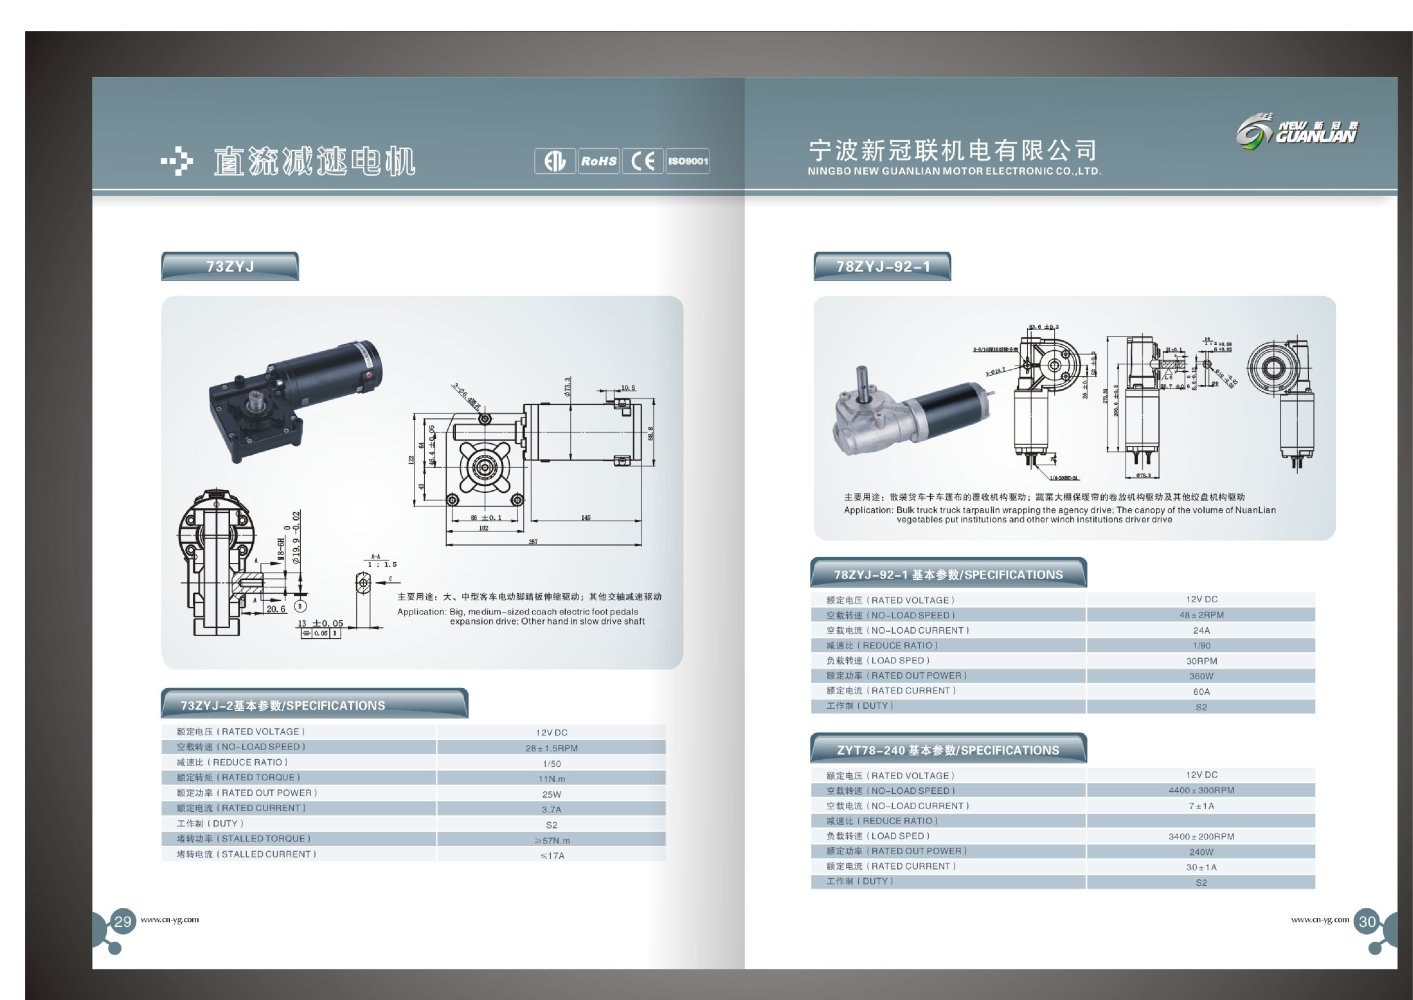 New Guanlian / DC Motor / 73ZYJ 78ZYJ-92-1 / Auto spare parts, Electric foot pedals expansion drive - 1 / 1 Pages